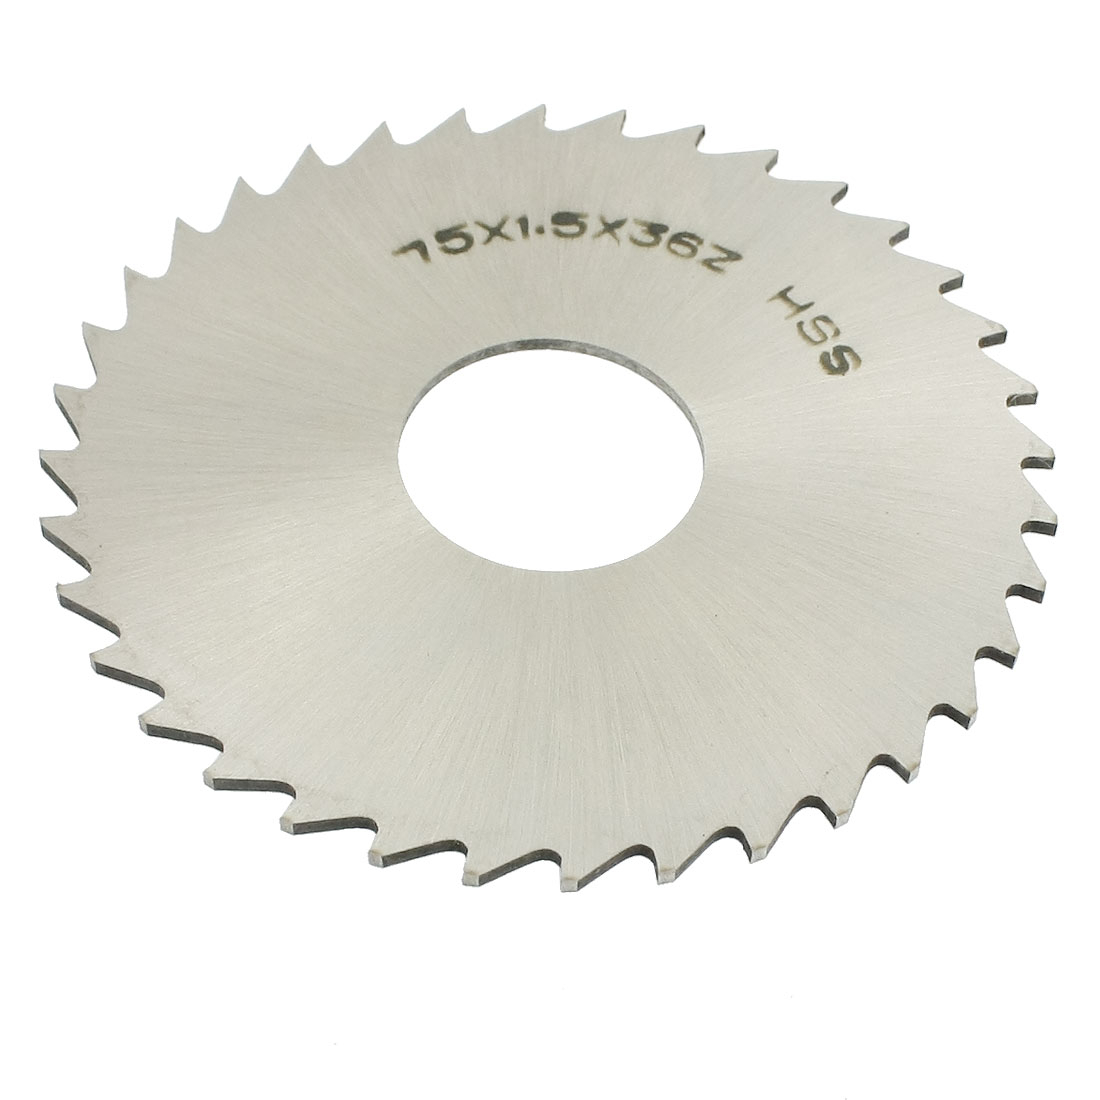 75mm x 1.5mm x 22mm 36T Milling Slitting Slotting Saw Mill Cutter